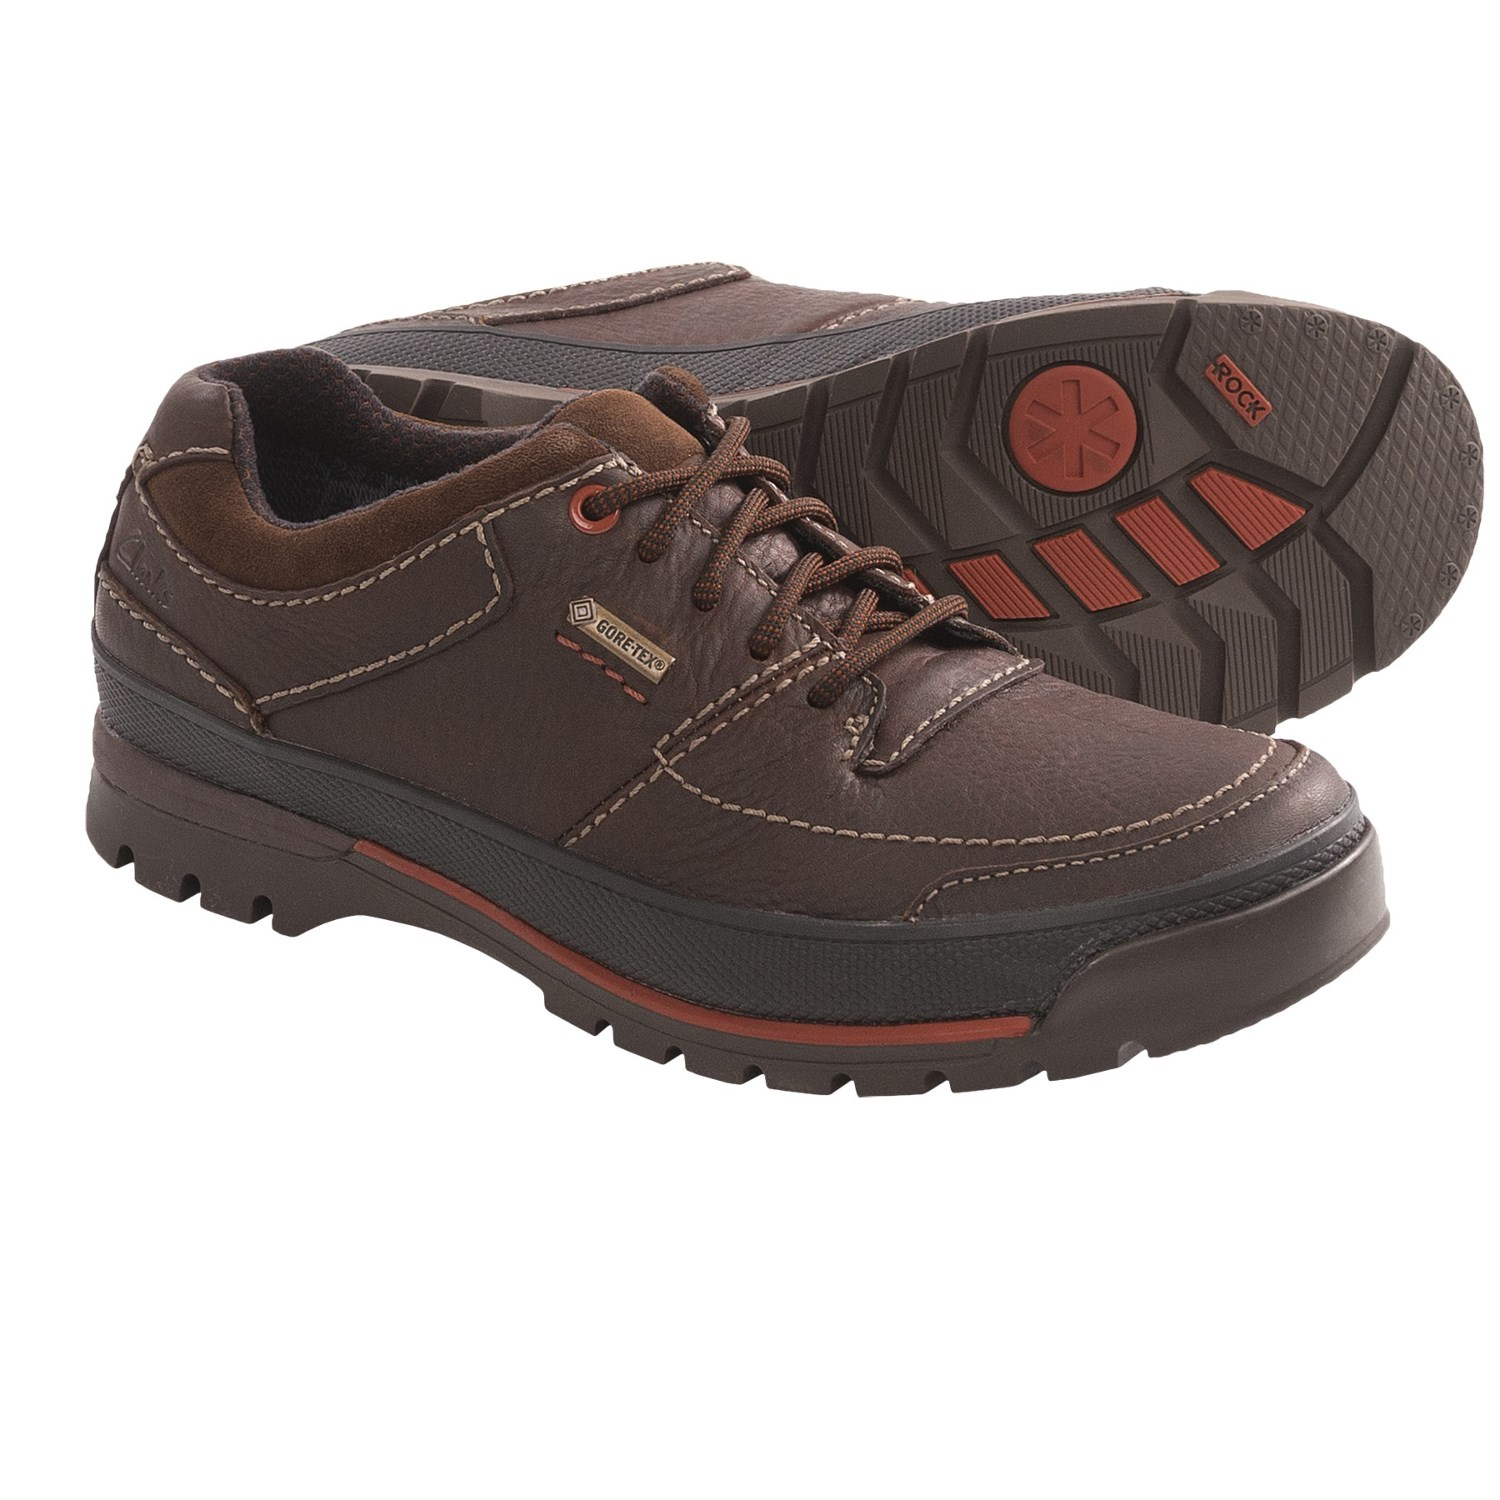 Clarks Narly Path Gore-Tex Shoes - Waterproof (For Men) in Mahogany